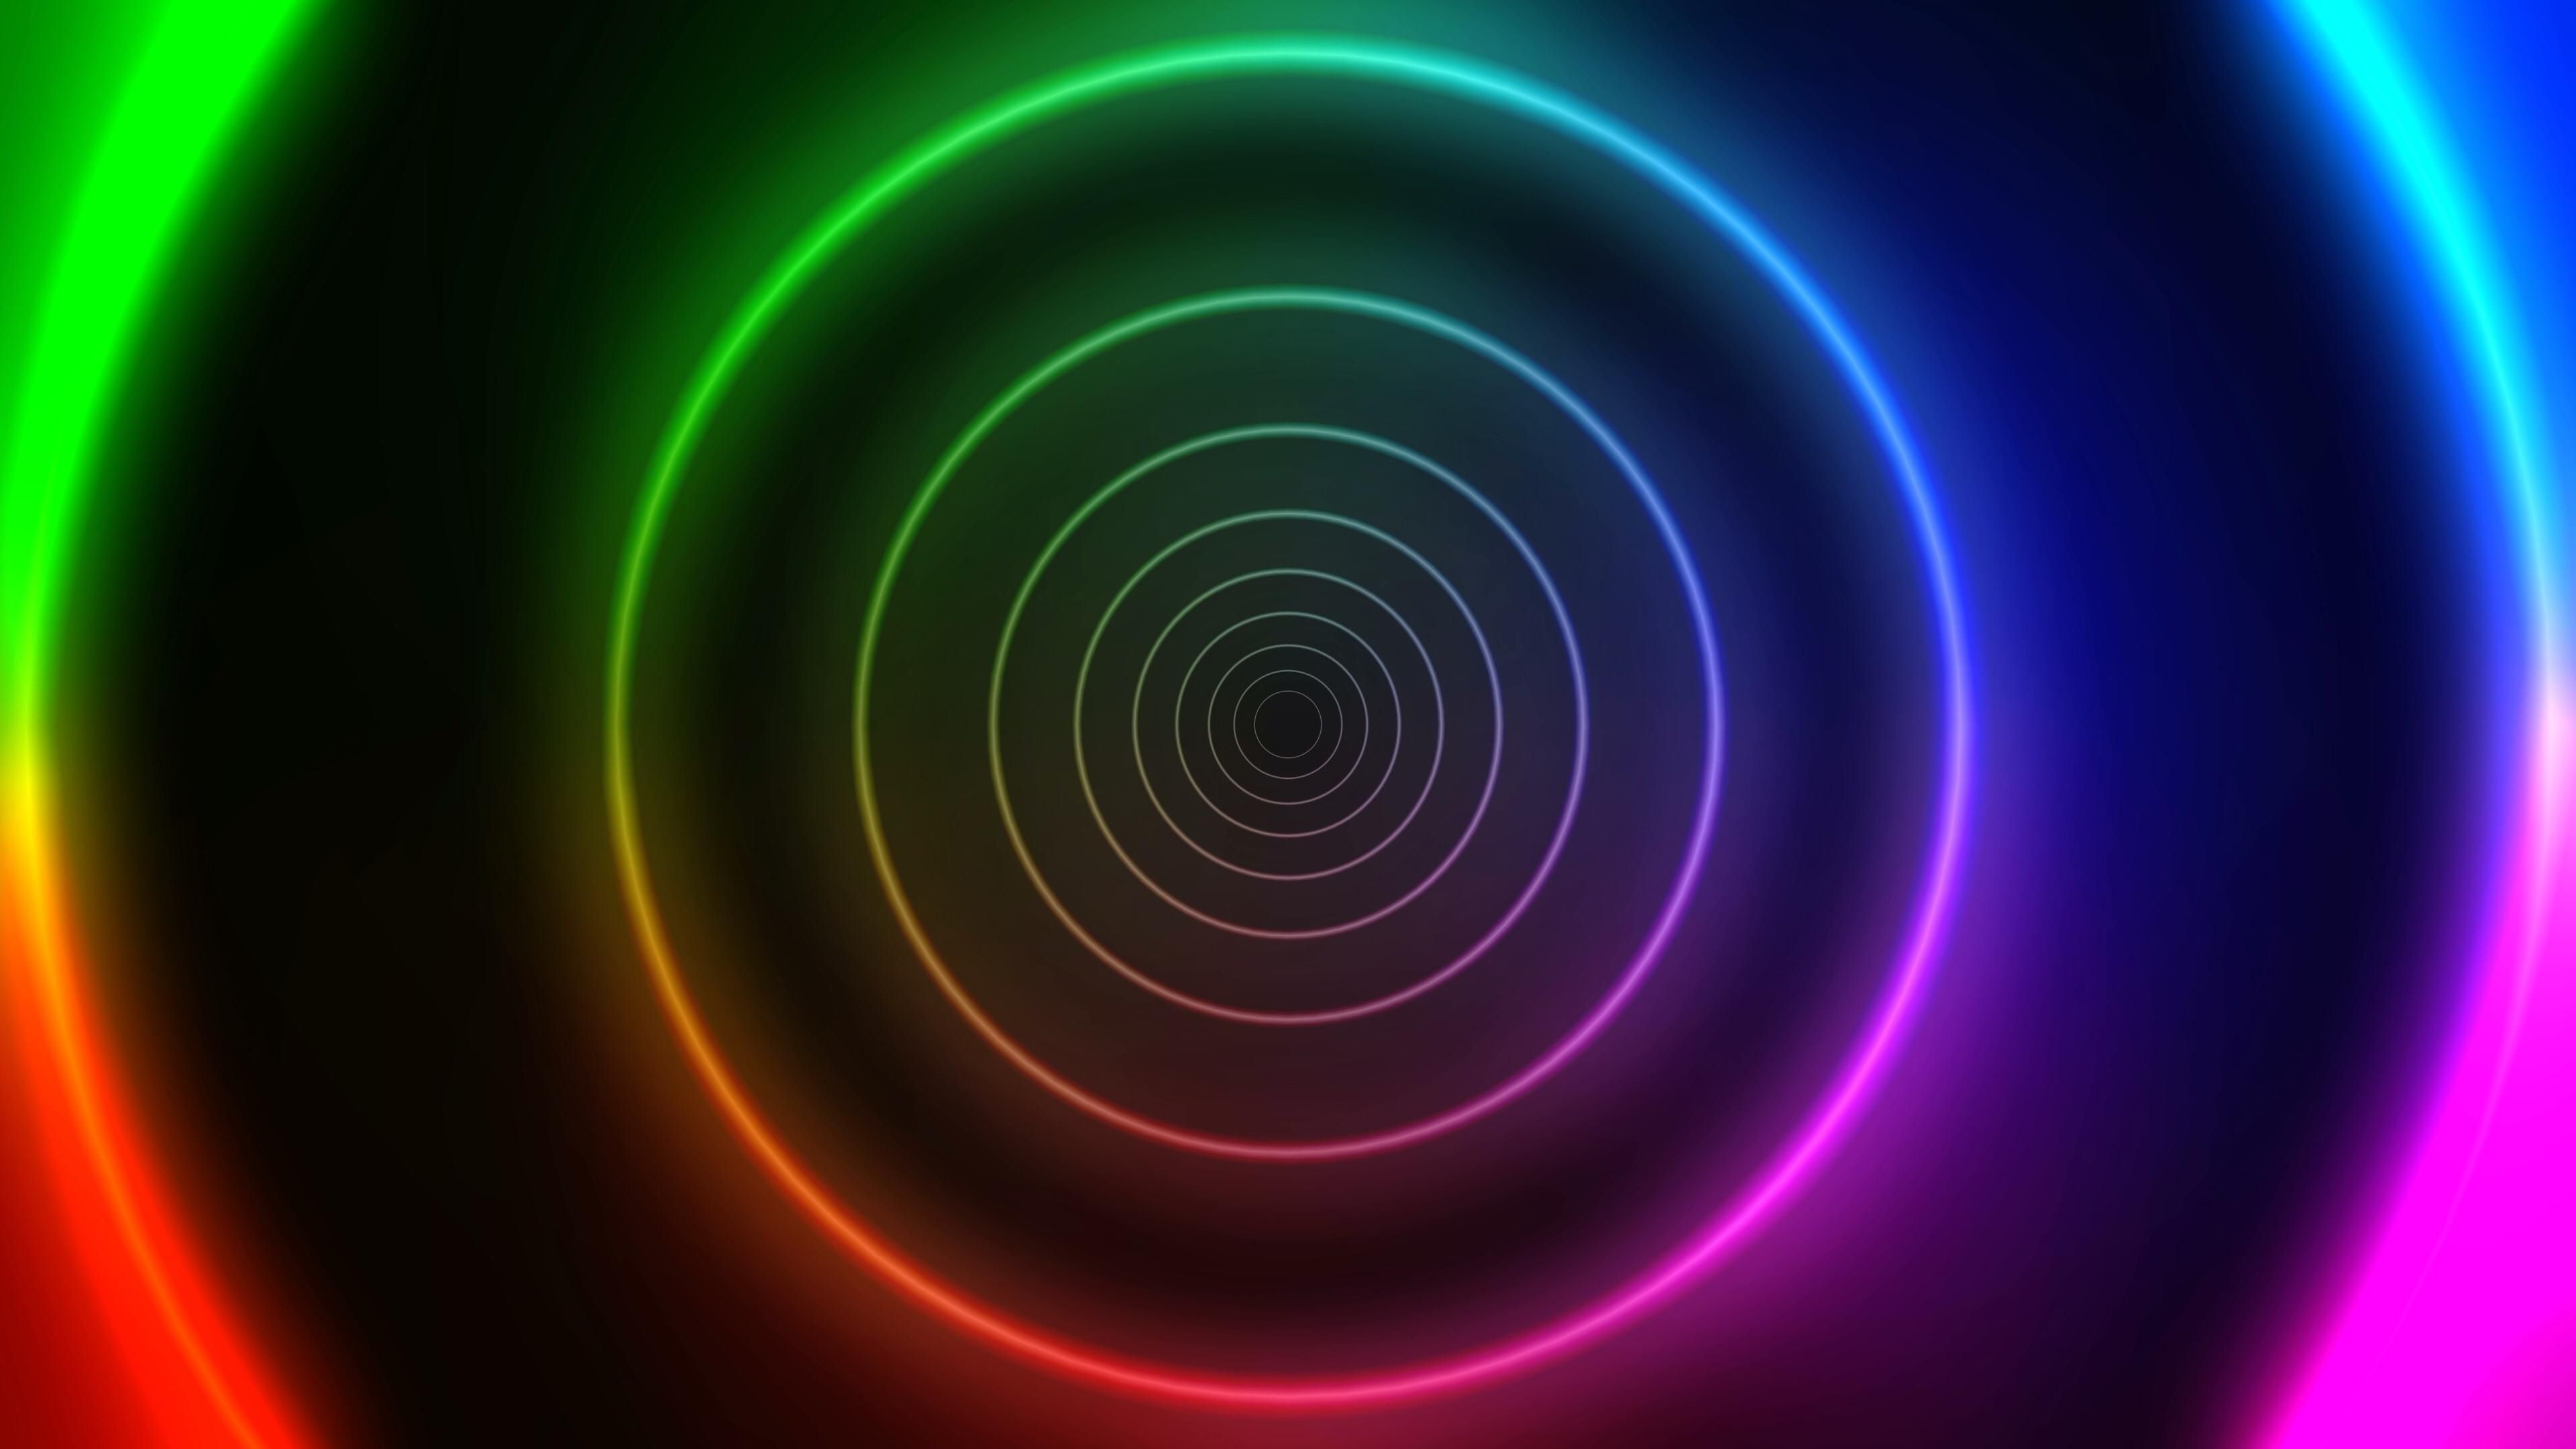 Free Motion Graphic Background Neon Rainbow Circles Tunnel Vj Loop Virtual Video Iphone Background Images Love Wallpaper Backgrounds Background Images Wallpapers